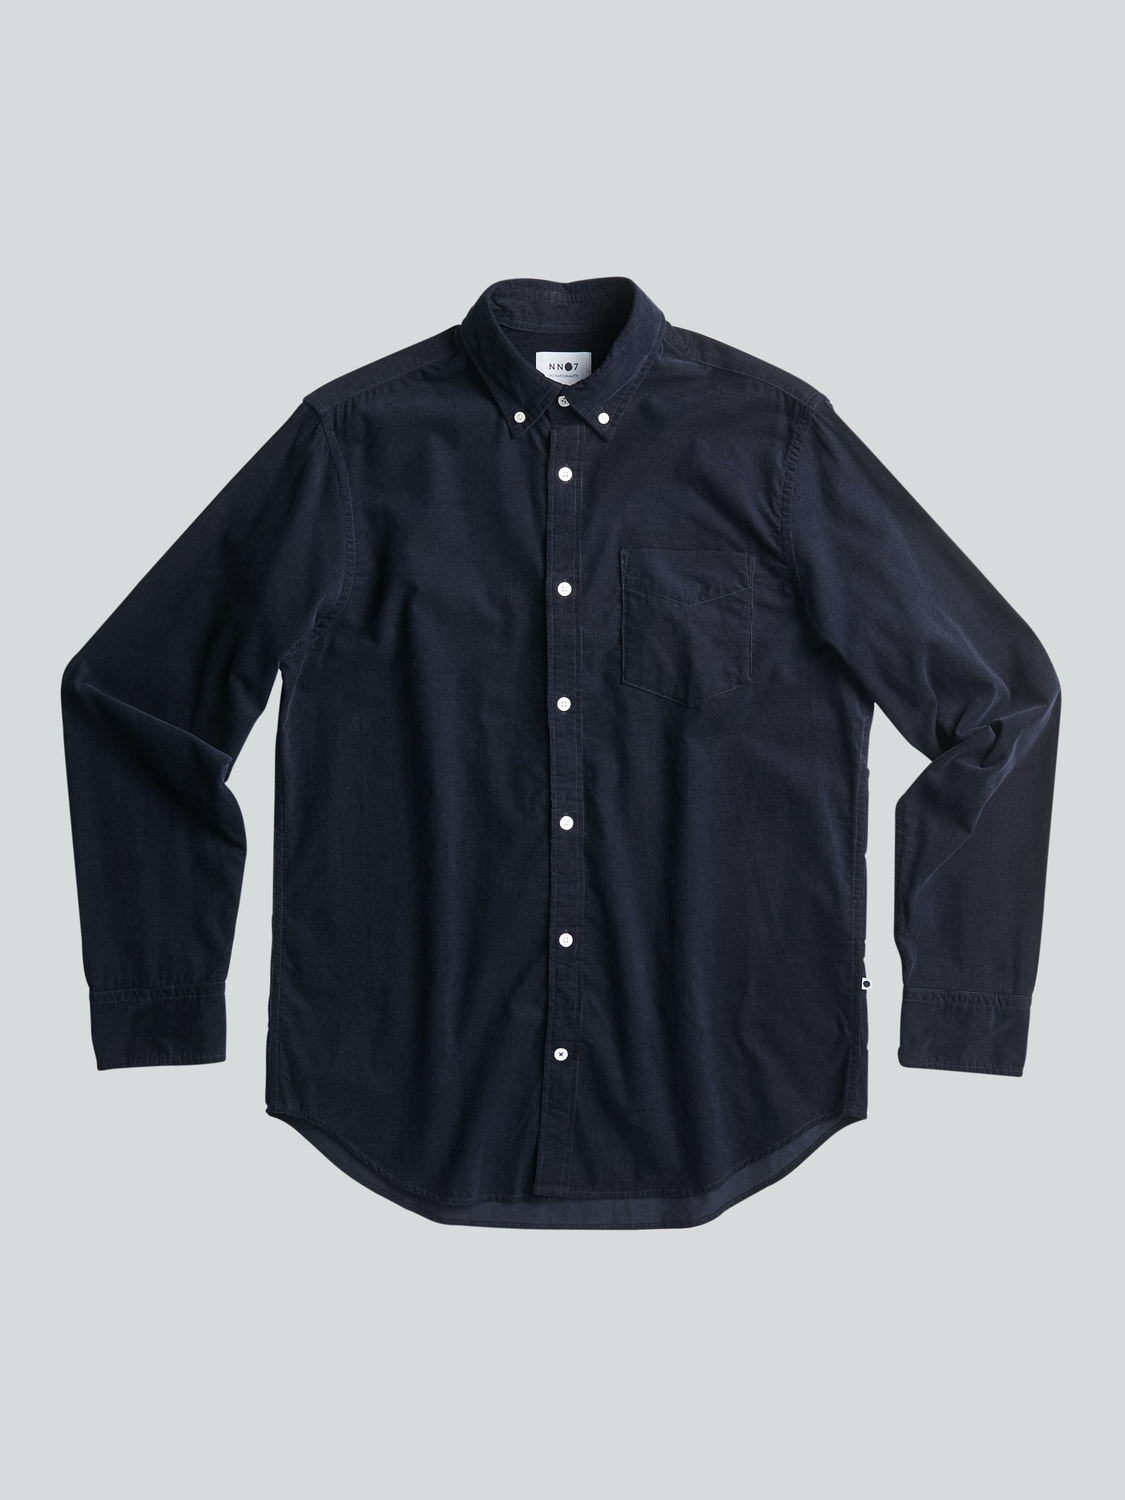 NN07 - Levon Shirt 5723 navy blue | GATE 36 Hobro